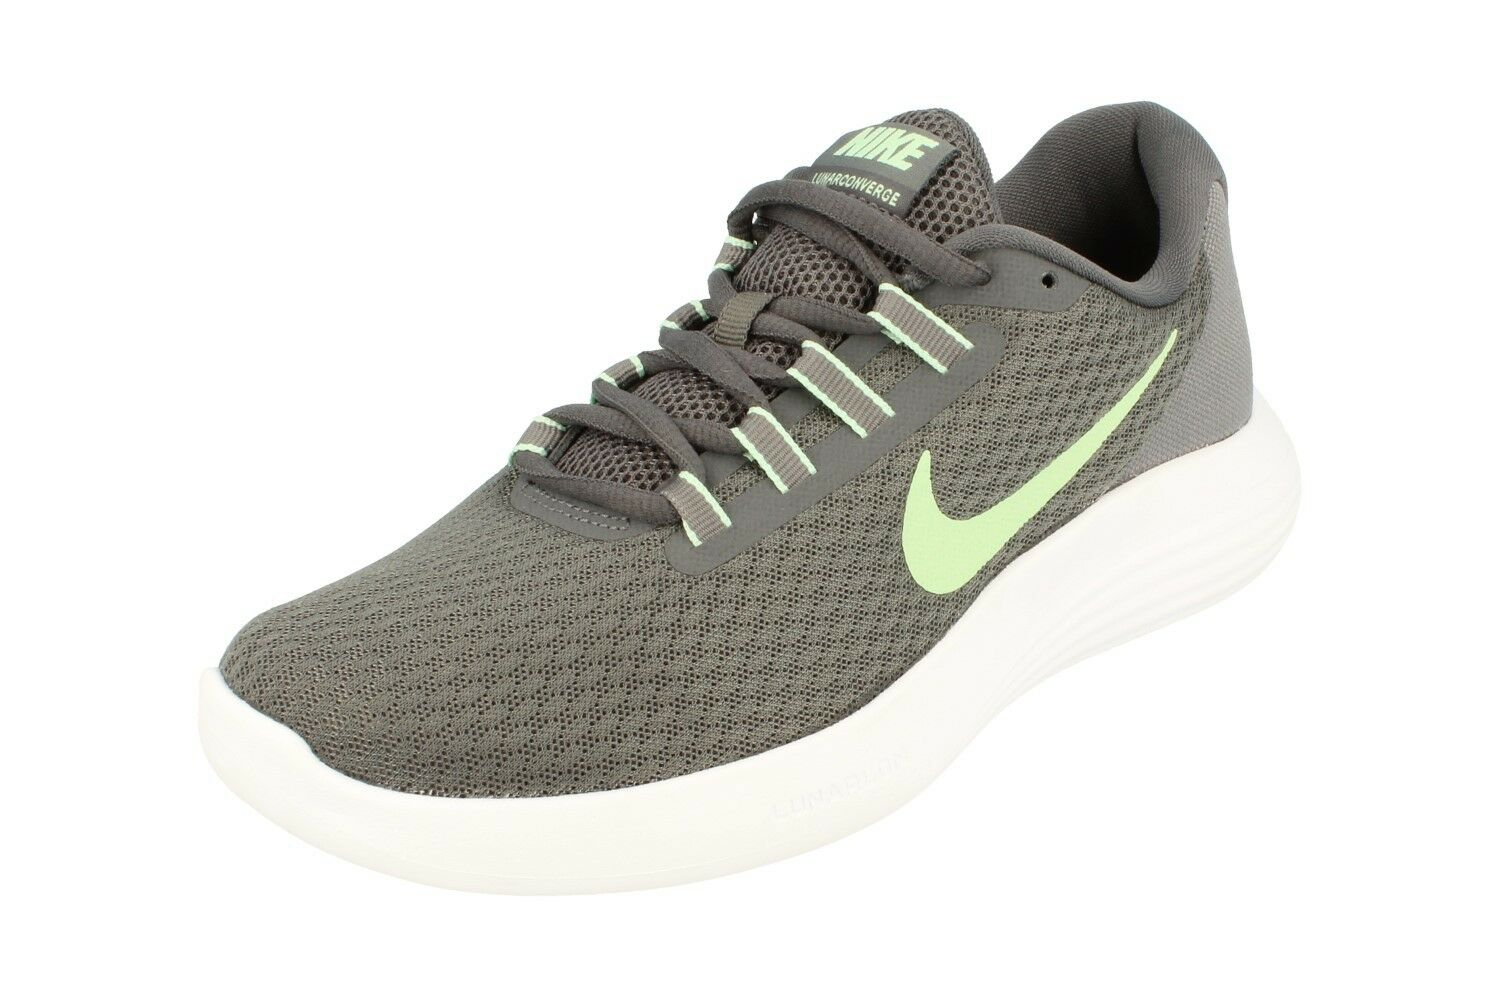 Nike Lunarconverge Womens Running Trainers 885420 Sneaker Shoes 004 004 Shoes 07afac